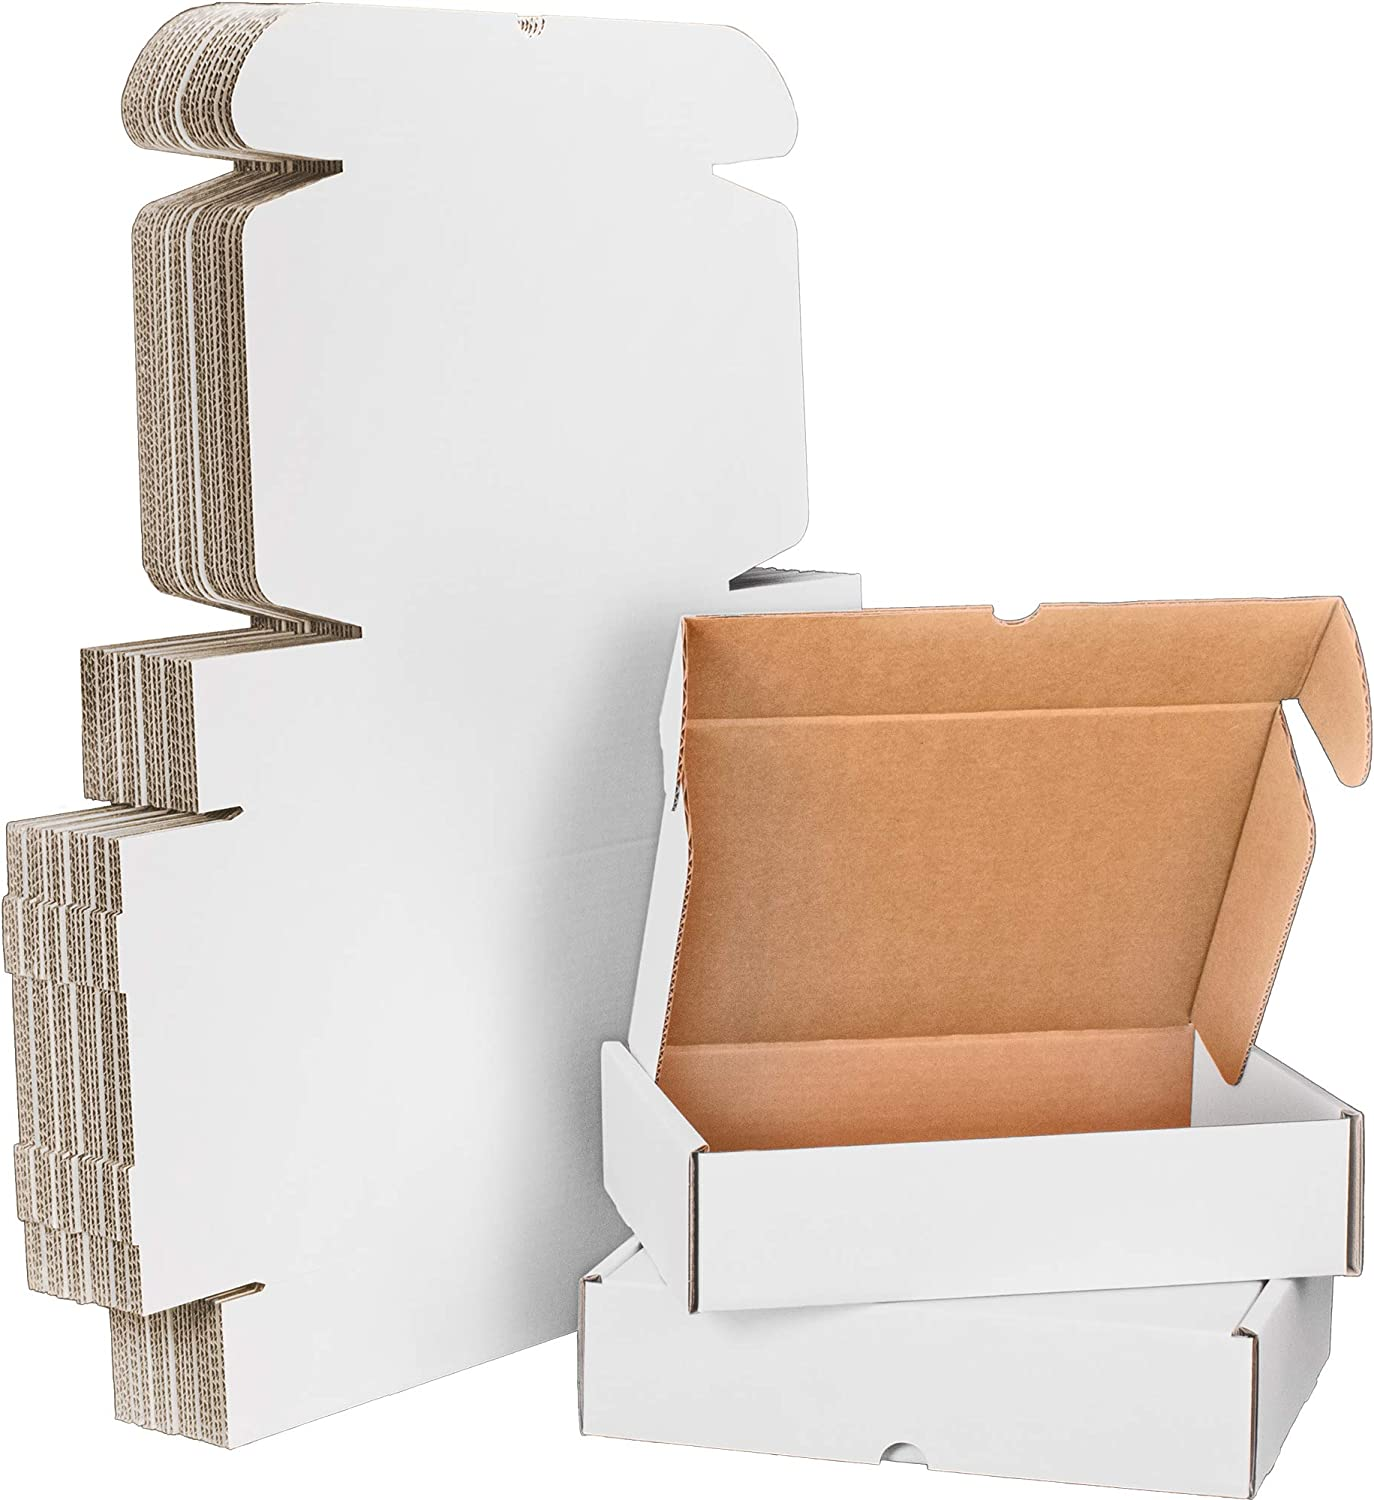 12x9x3 Heavy-Duty Free Shipping New White Corrugated Small Cardboard All stores are sold Mailer P Box